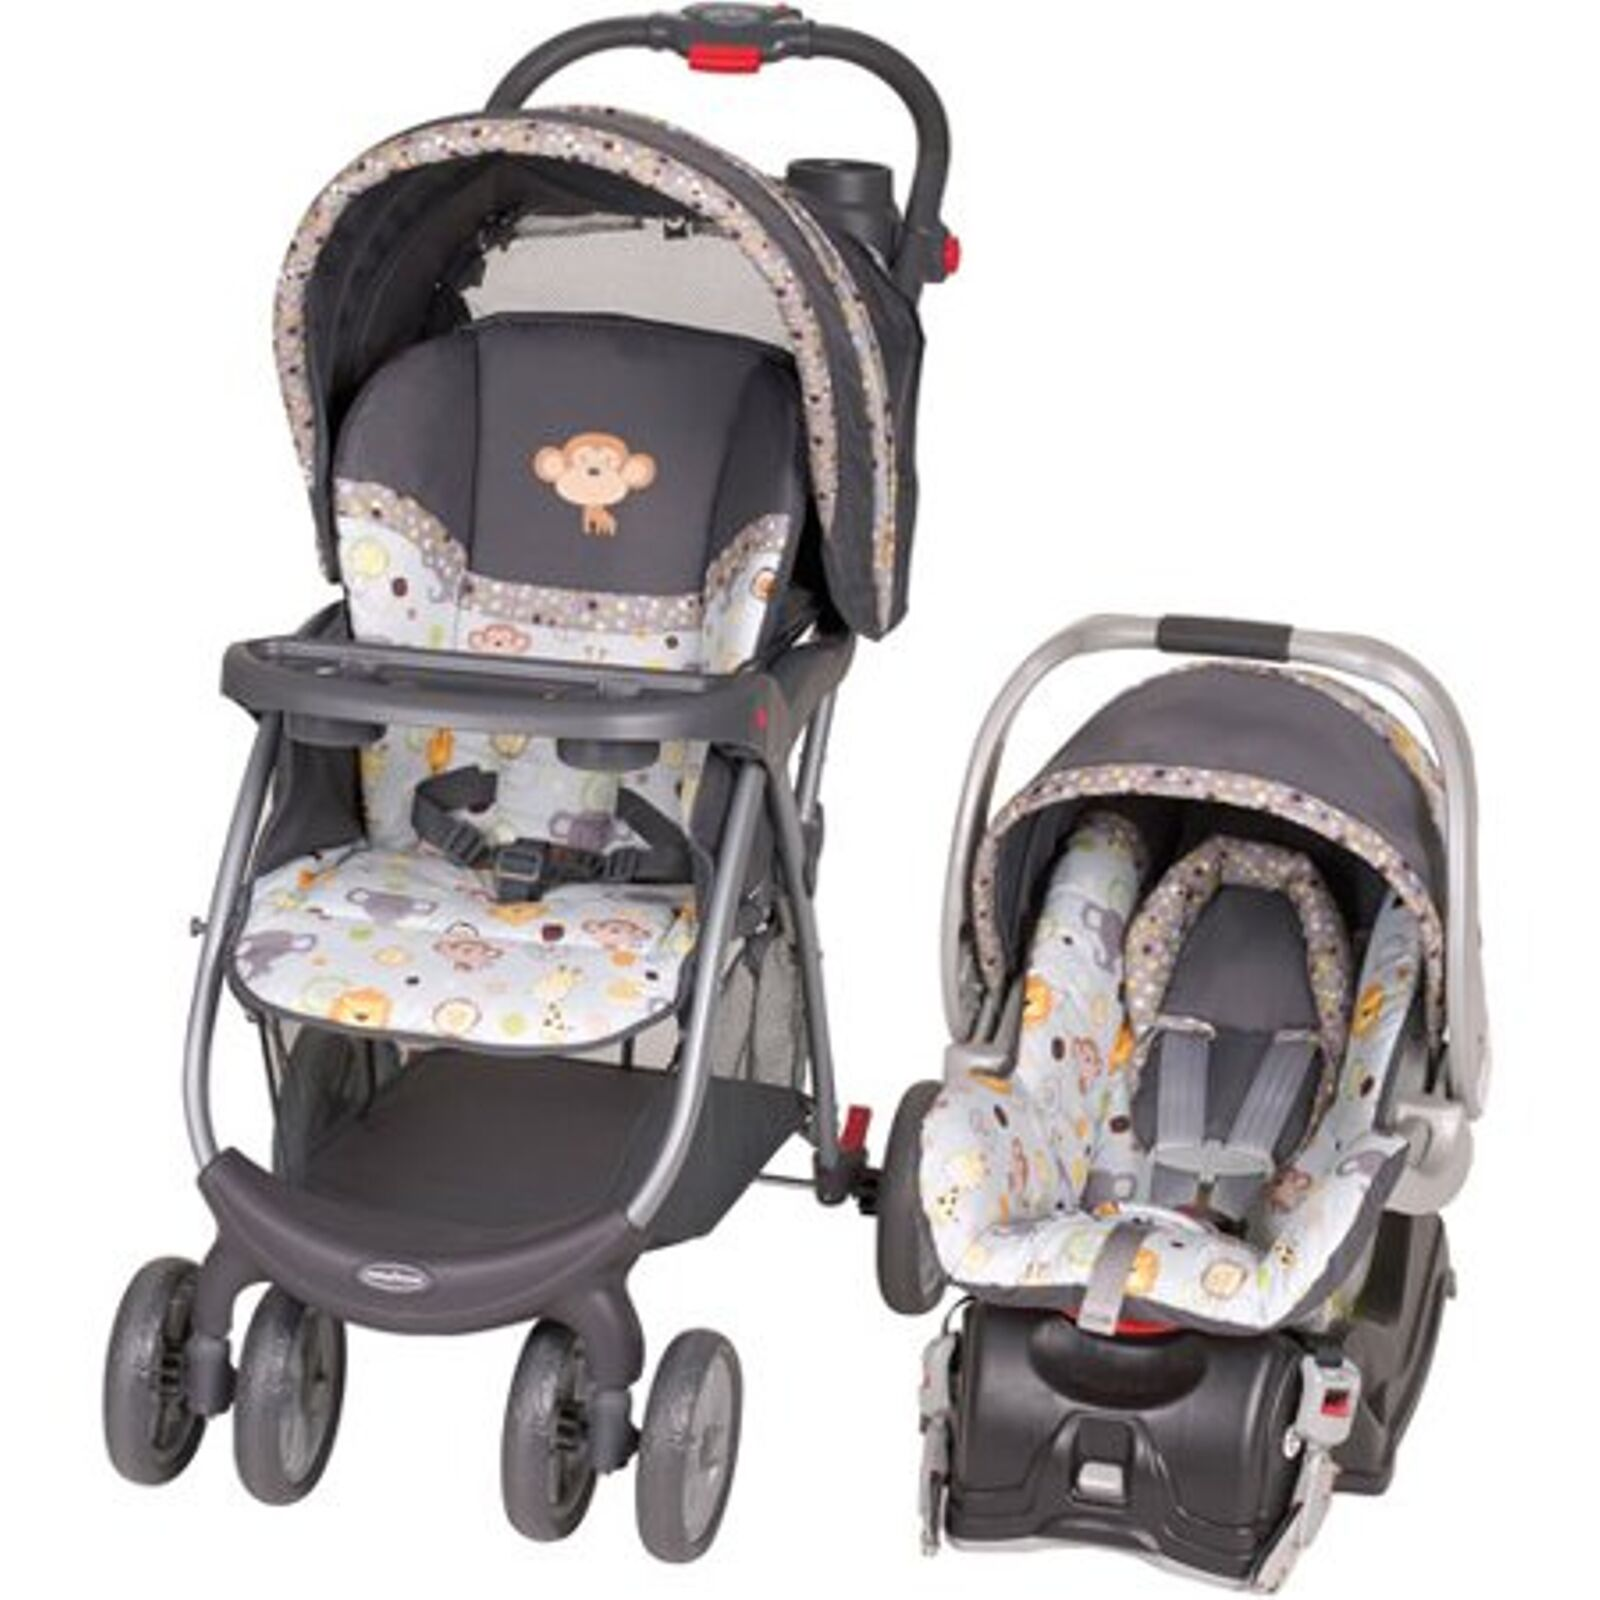 BABY TREND ENVY Travel System Car Seat Infant Carriage Folda